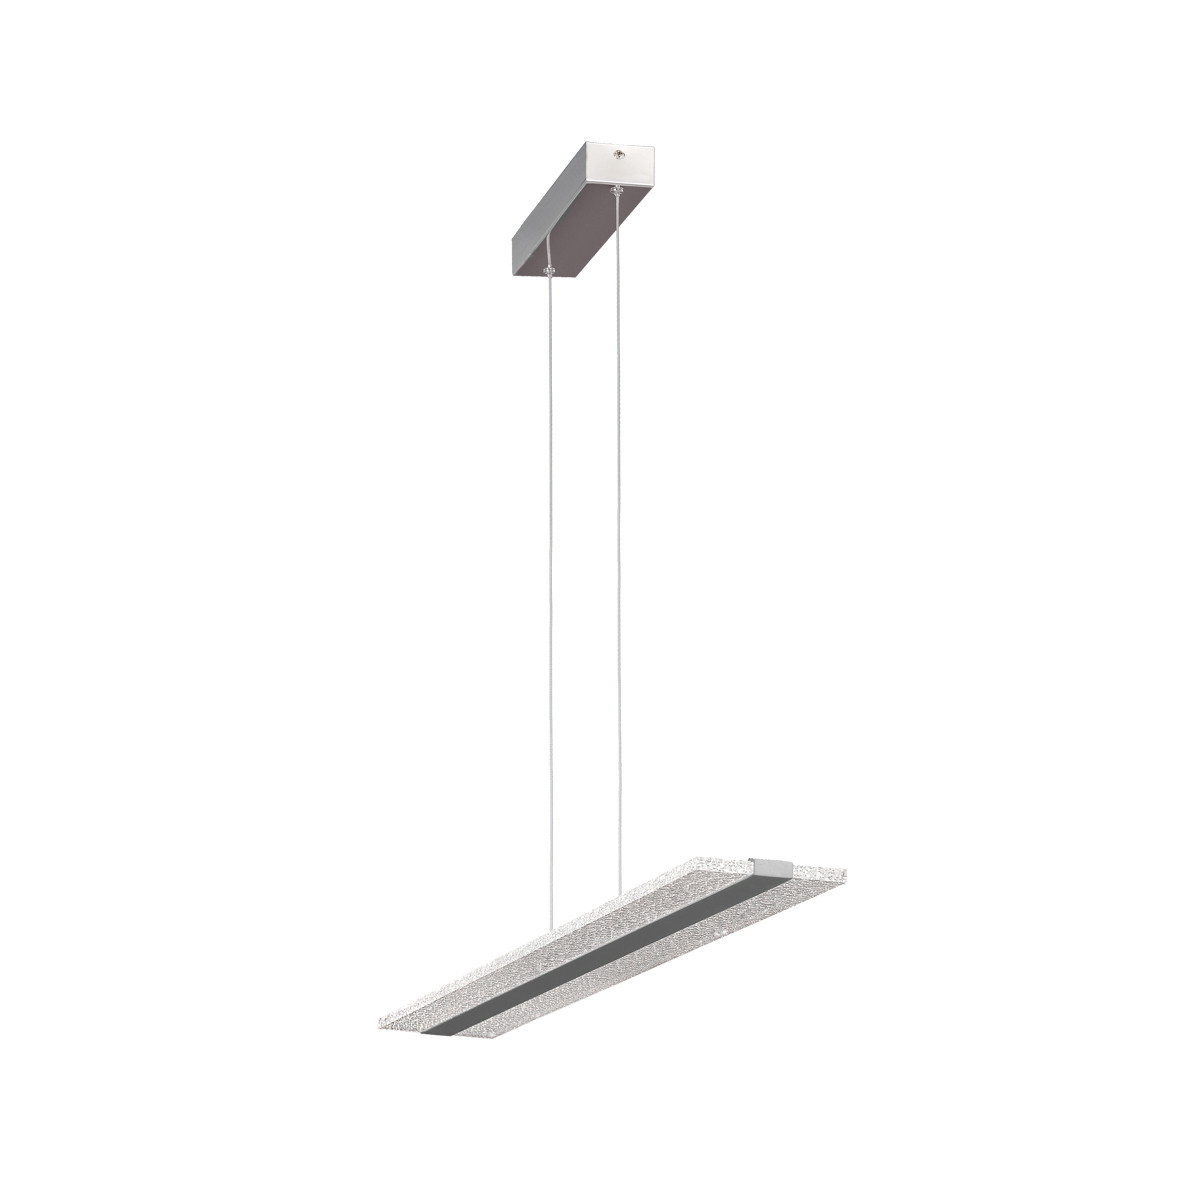 Burbuja Pendant Rectangular 120cm 48W LED 4000K, 3360lm, Chrome